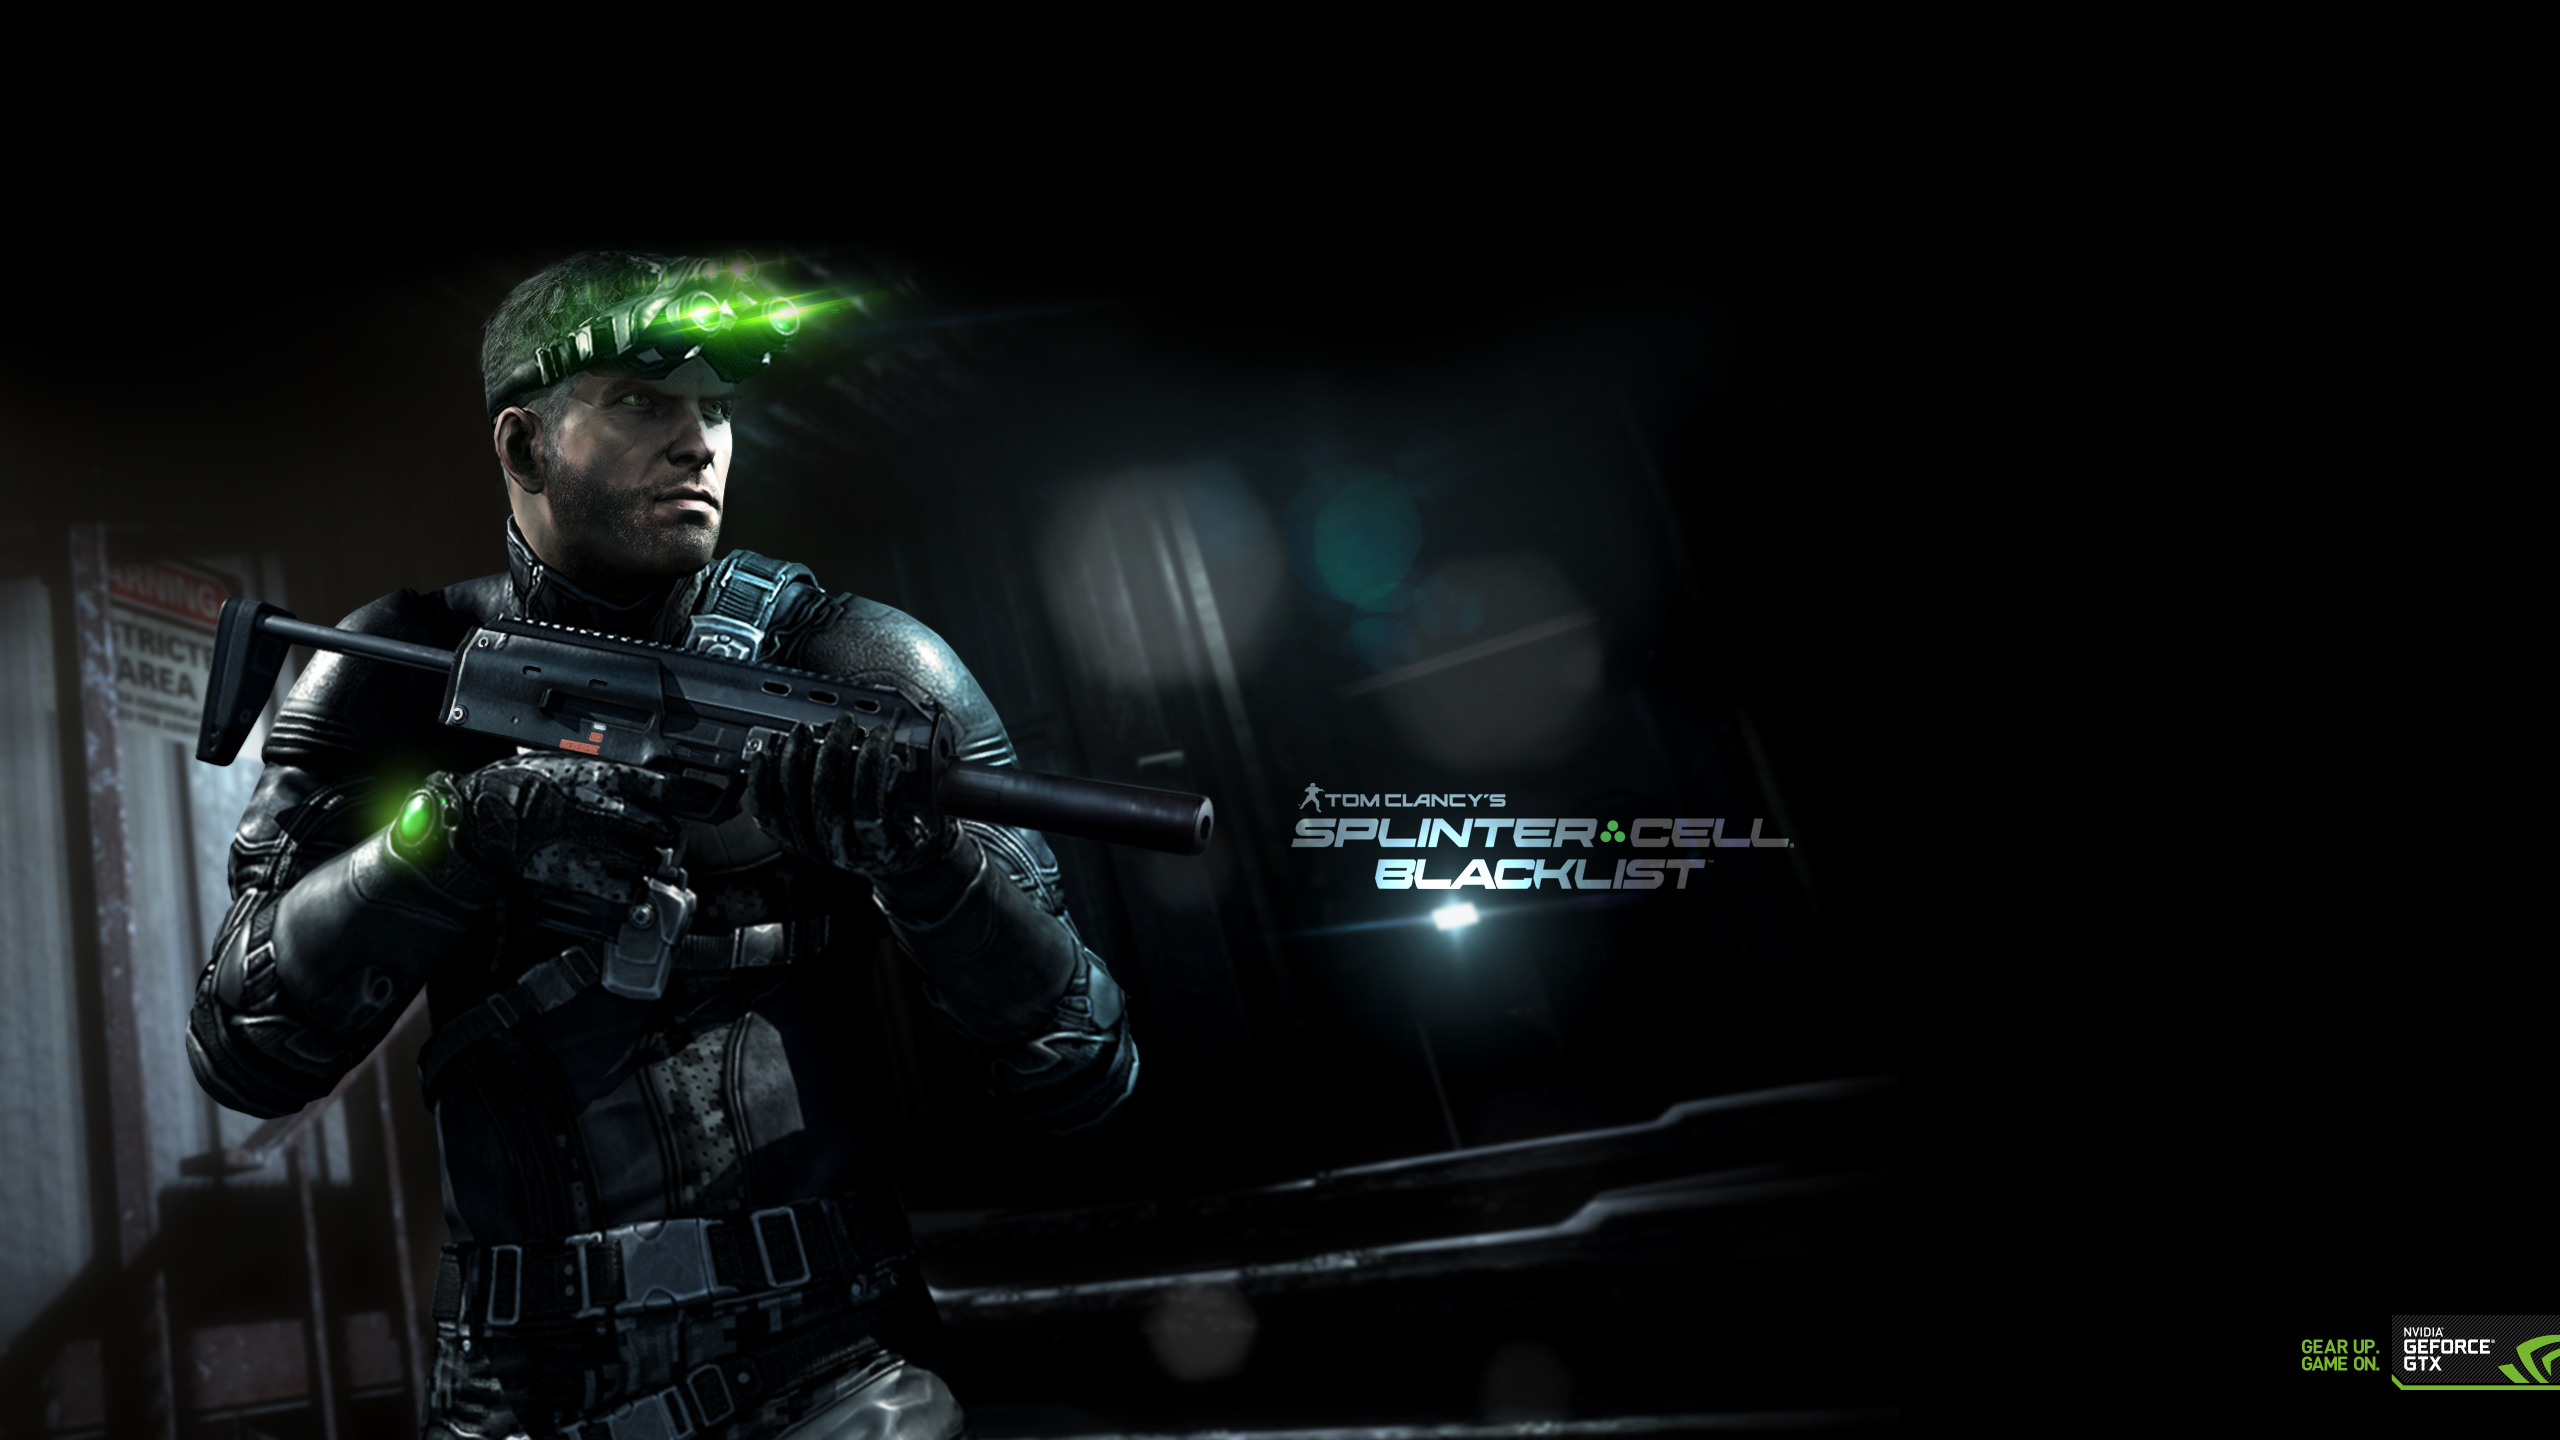 Clancys Splinter Cell Blacklist Wallpaper Now Available GeForce 2560x1440